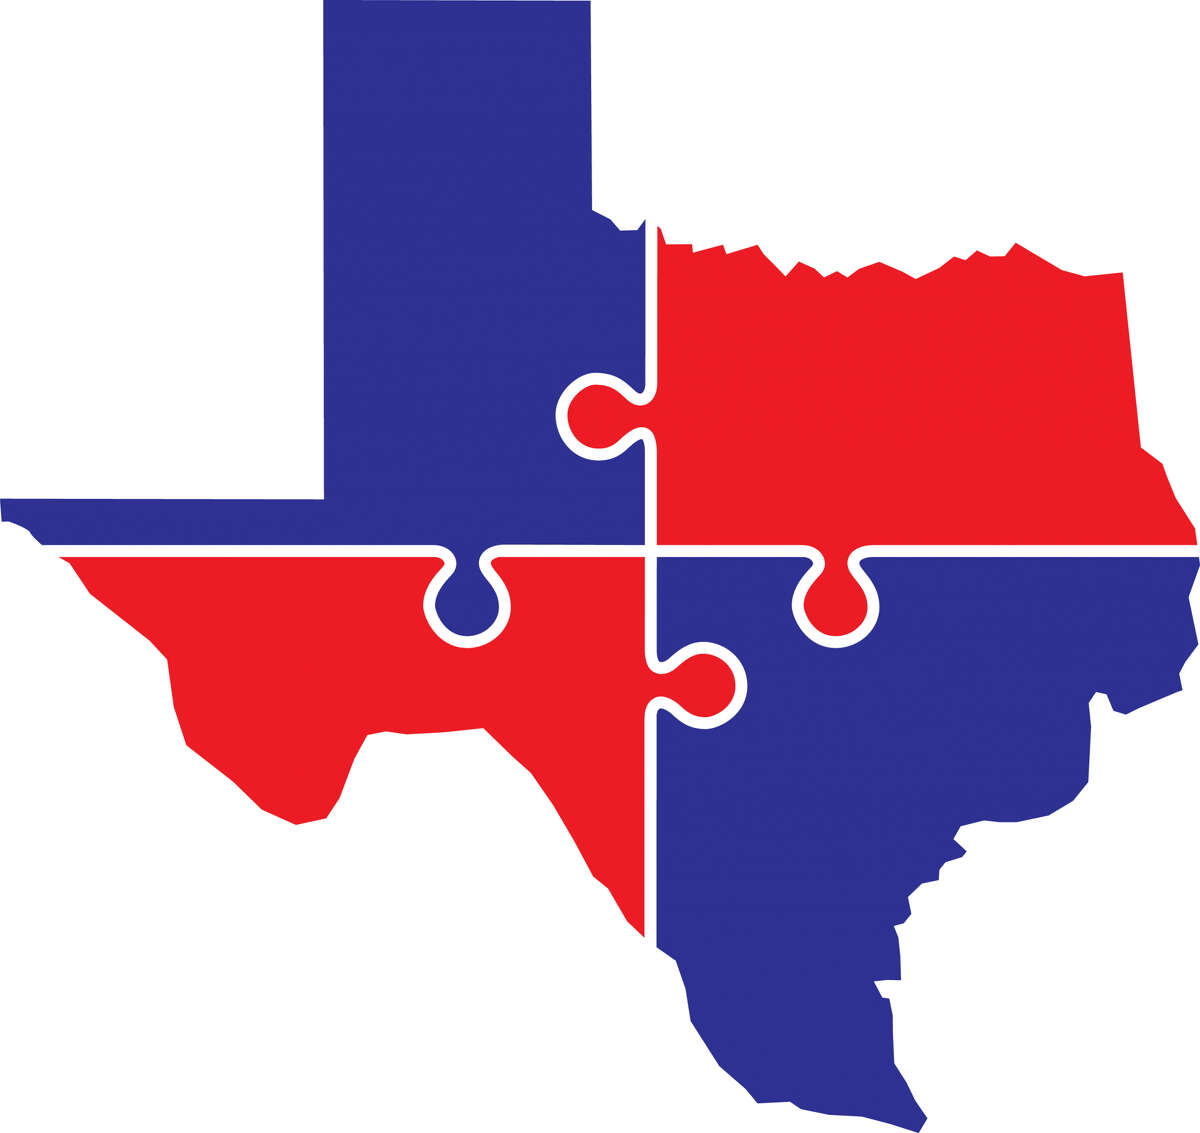 >>Texas' most gerrymandered districts in Texas according to data